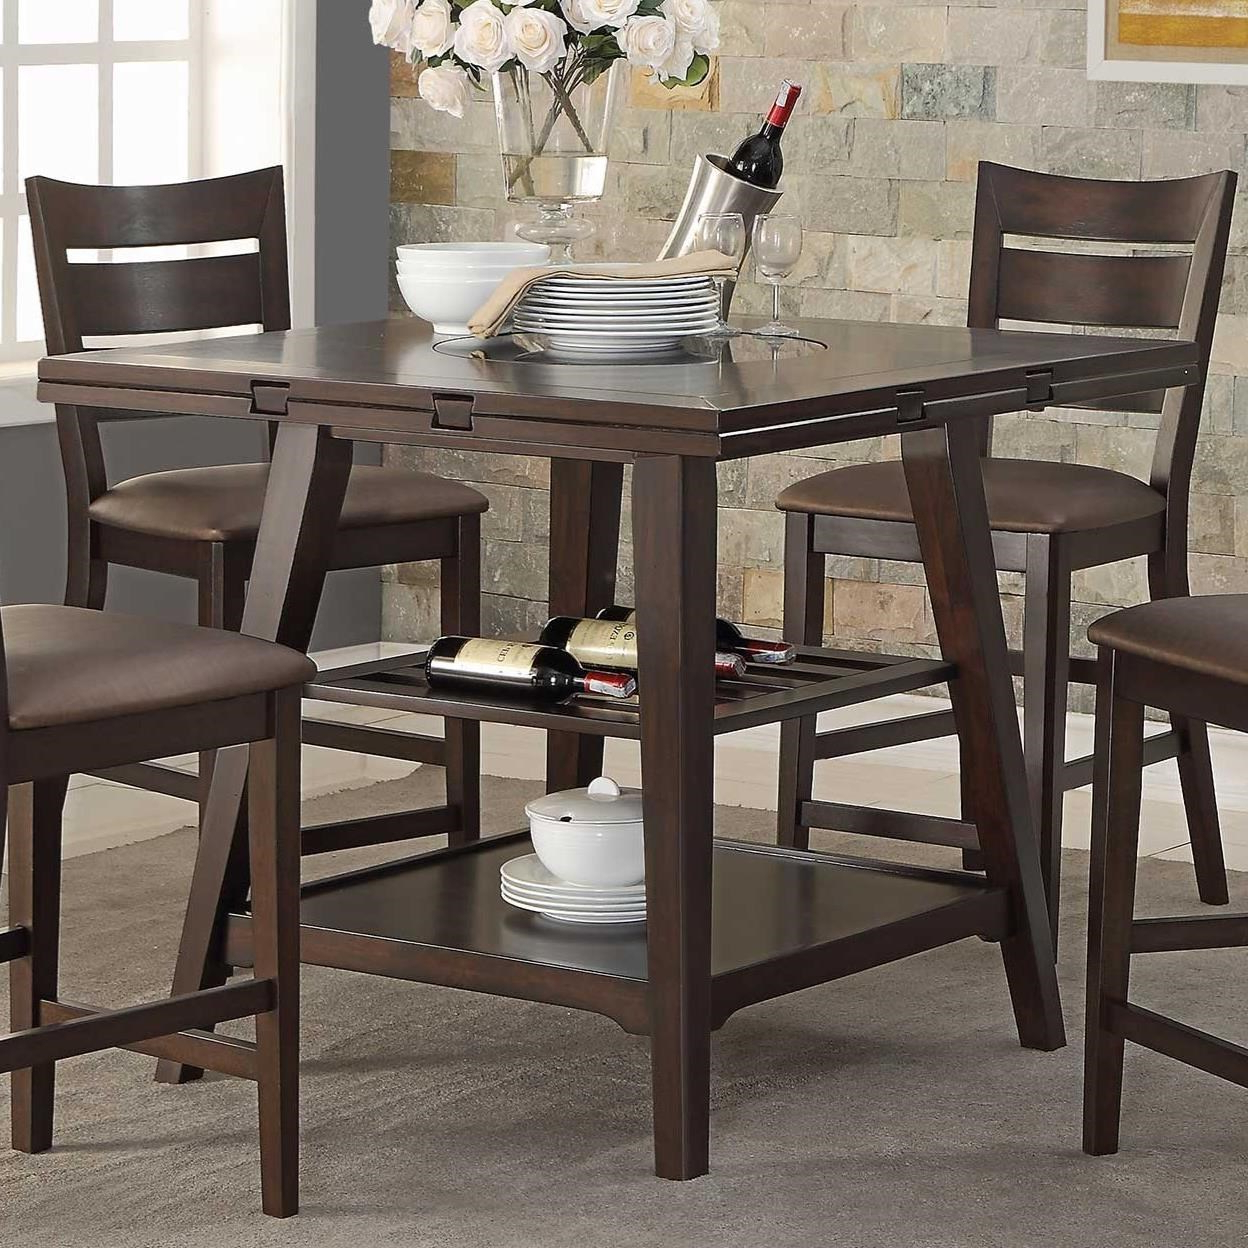 Transitional 4 Seating Drop Leaf Casual Dining Tables With Regard To Most Popular Winners Only Parkside Drop Leaf Counter Height Table With (View 19 of 30)